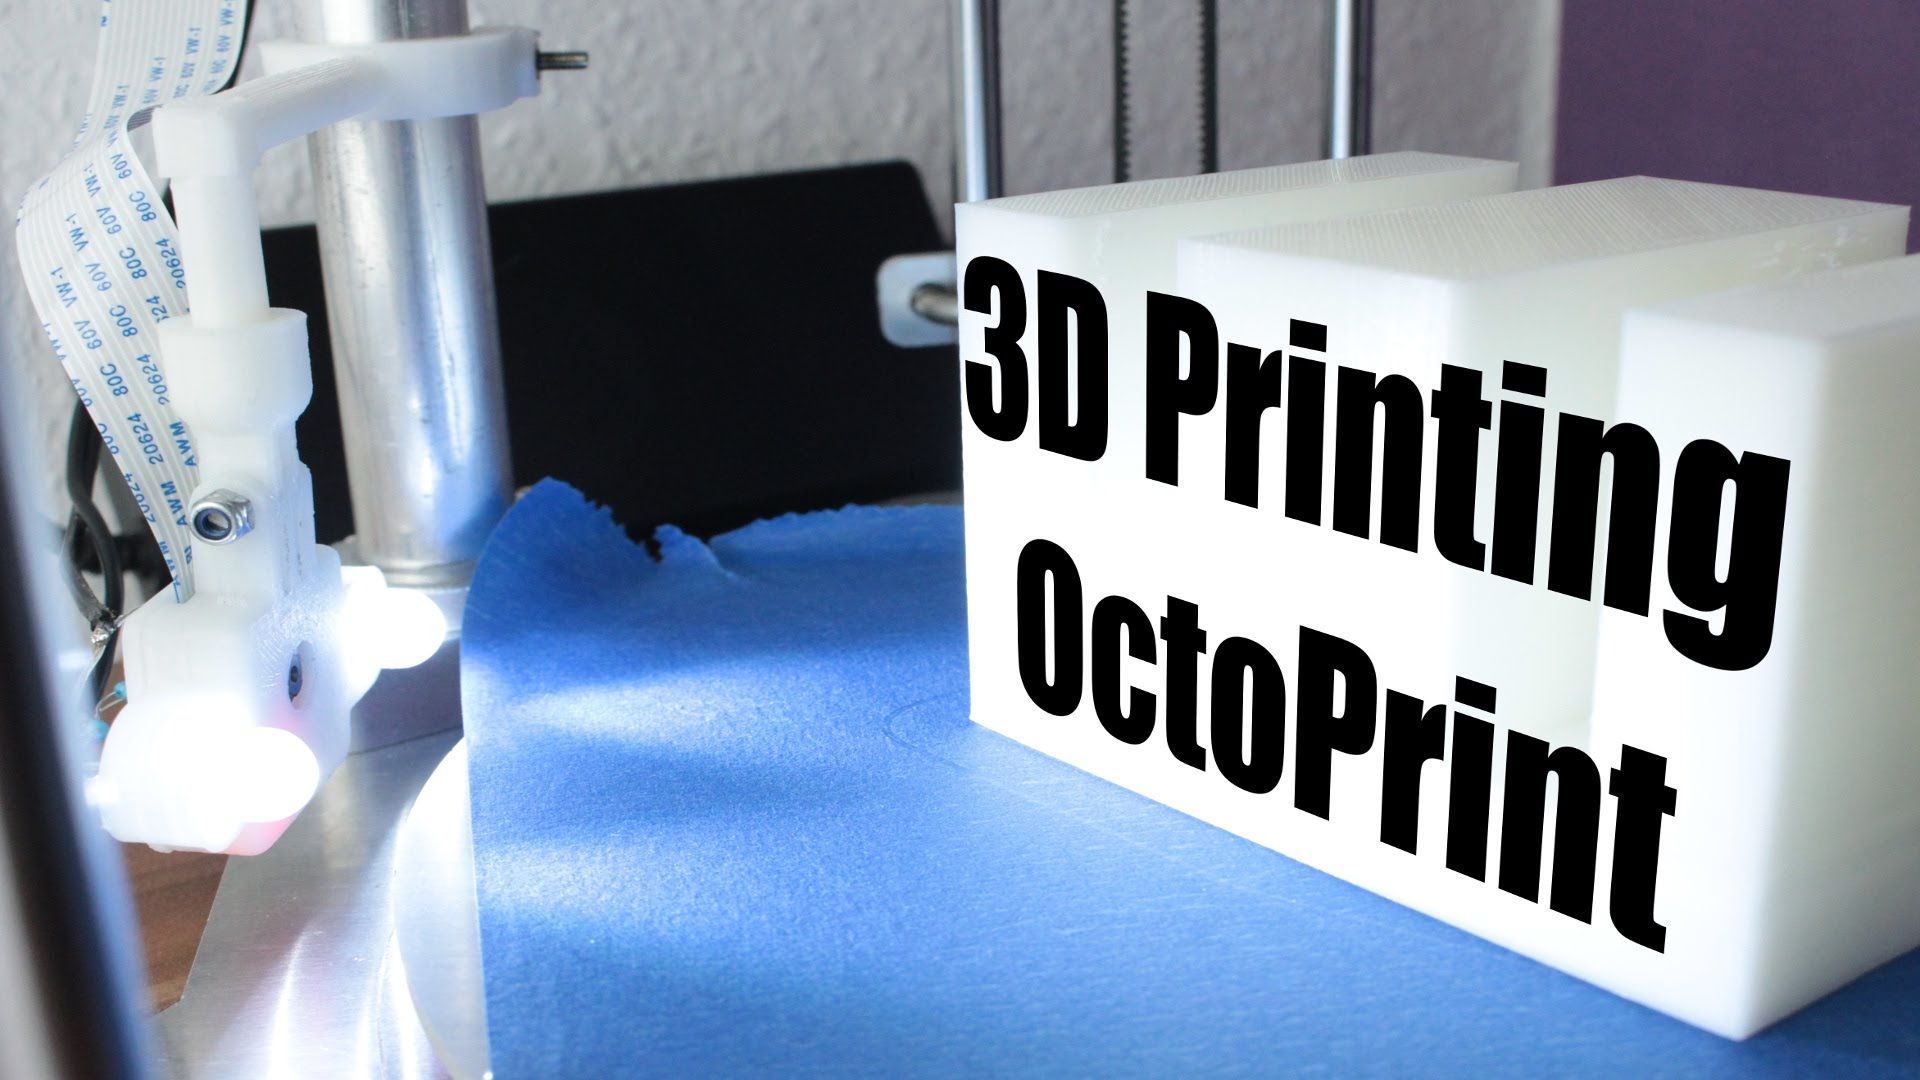 Wirelessly control your 3D Printer - OctoPrint Tutorial - 3D